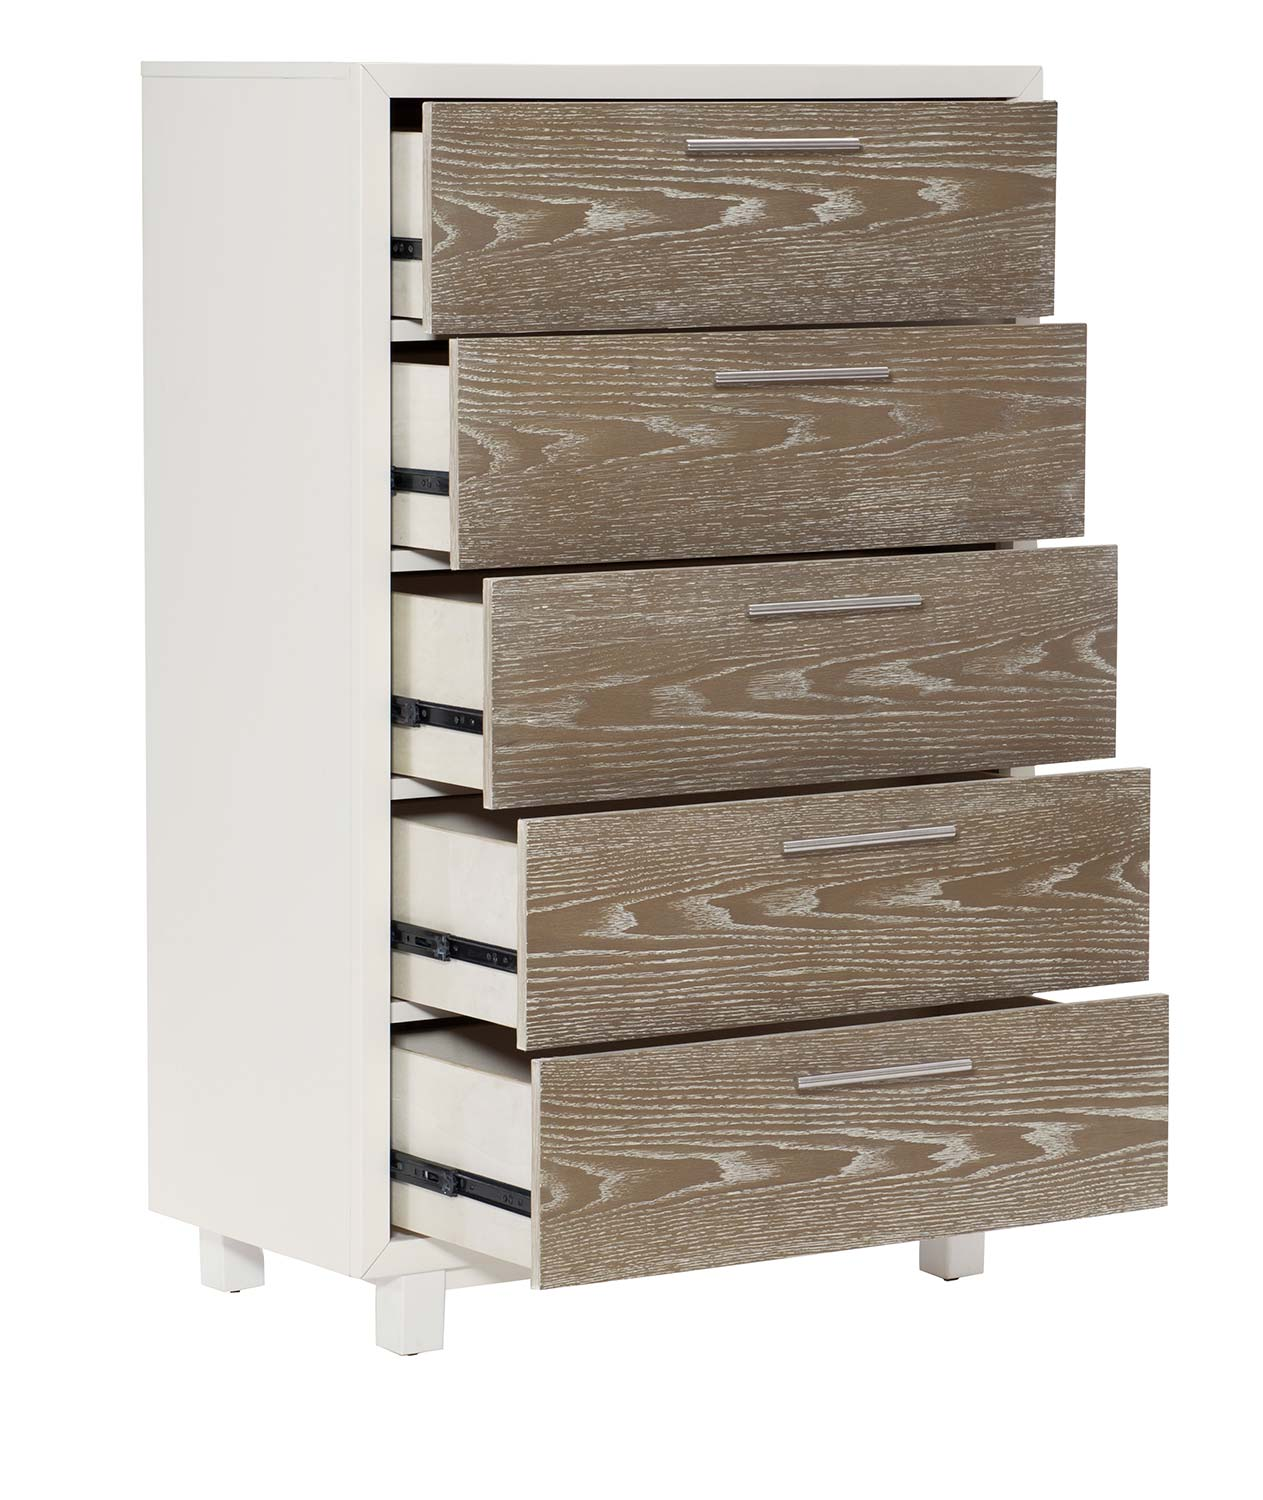 Homelegance Renly Chest - Natural Finish of Oak Veneer with White Framing